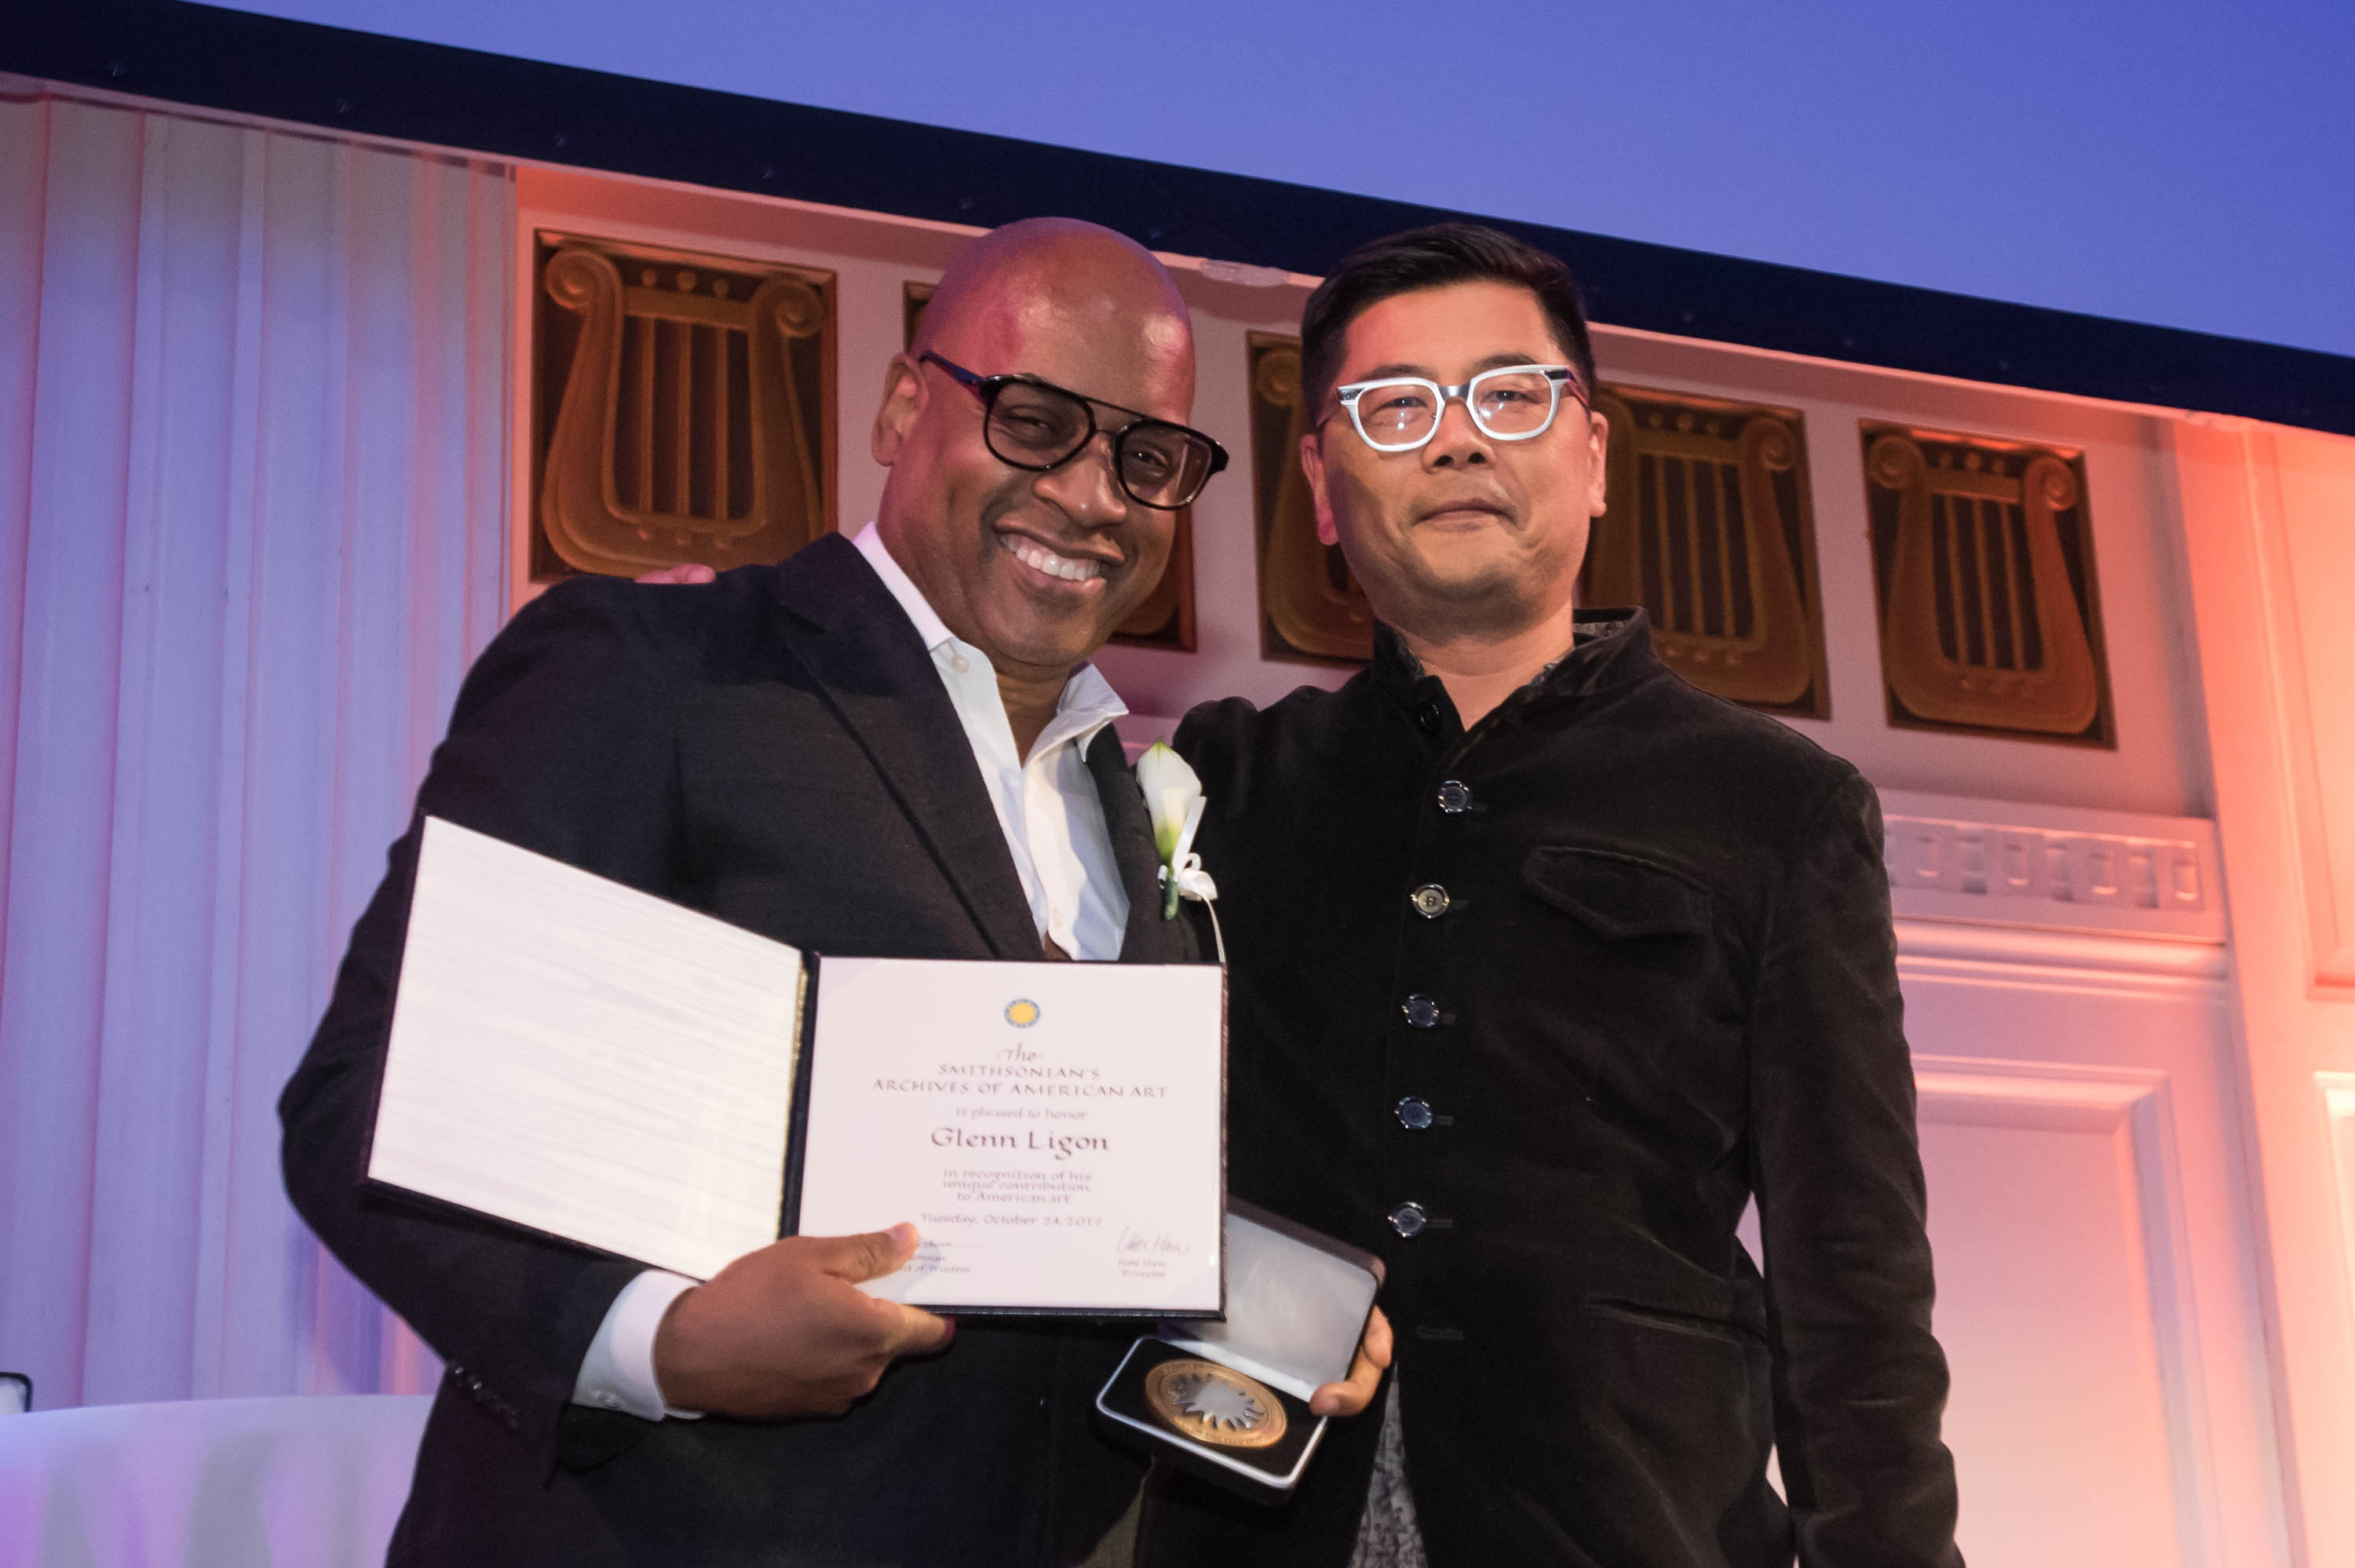 Photograph of Glenn Ligon and Ron Kim